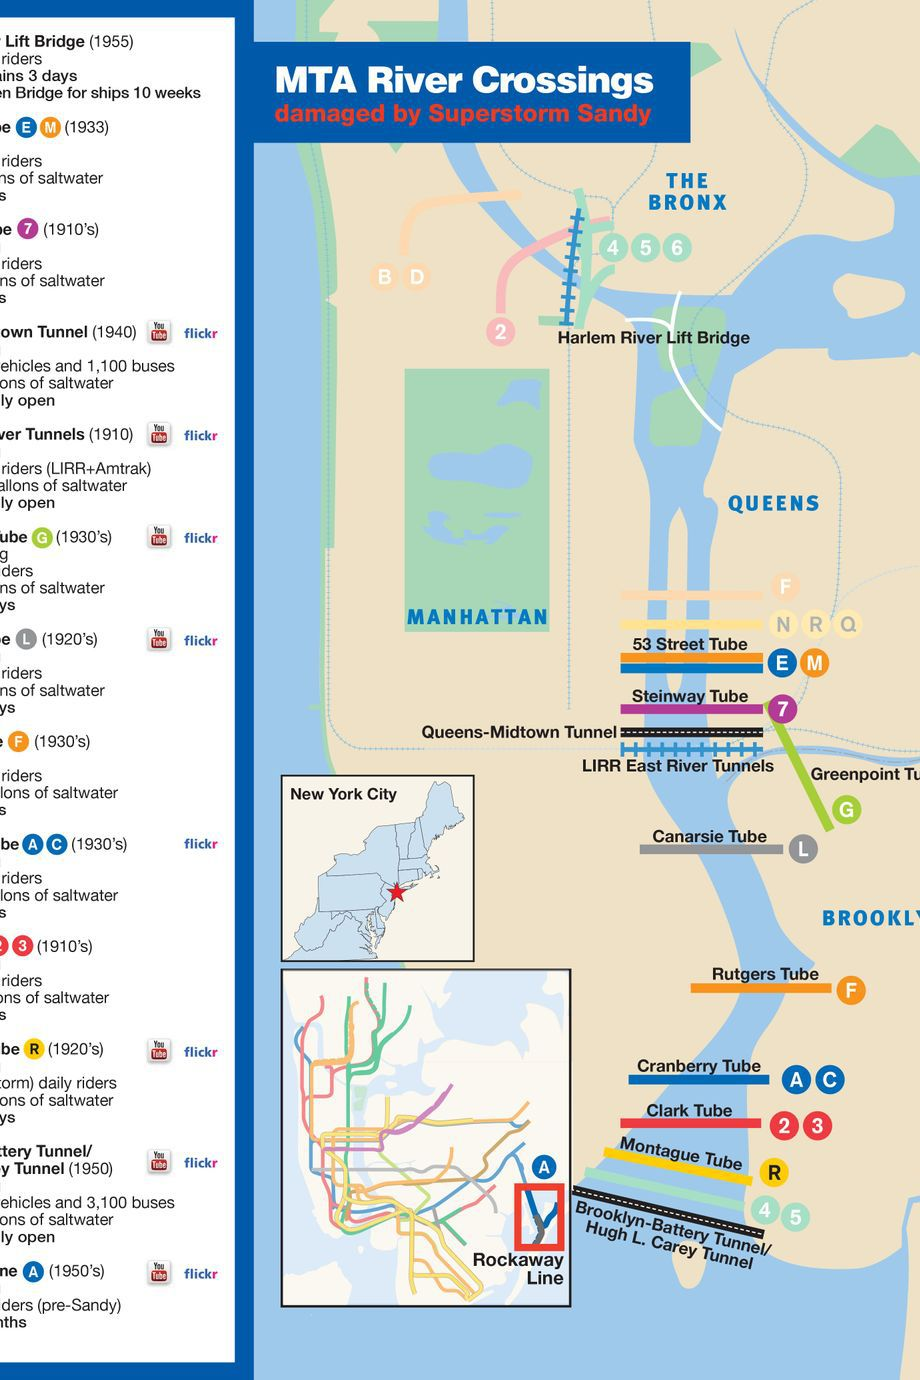 An MTA map showing the various river crossings that were damaged by Superstorm Sandy.